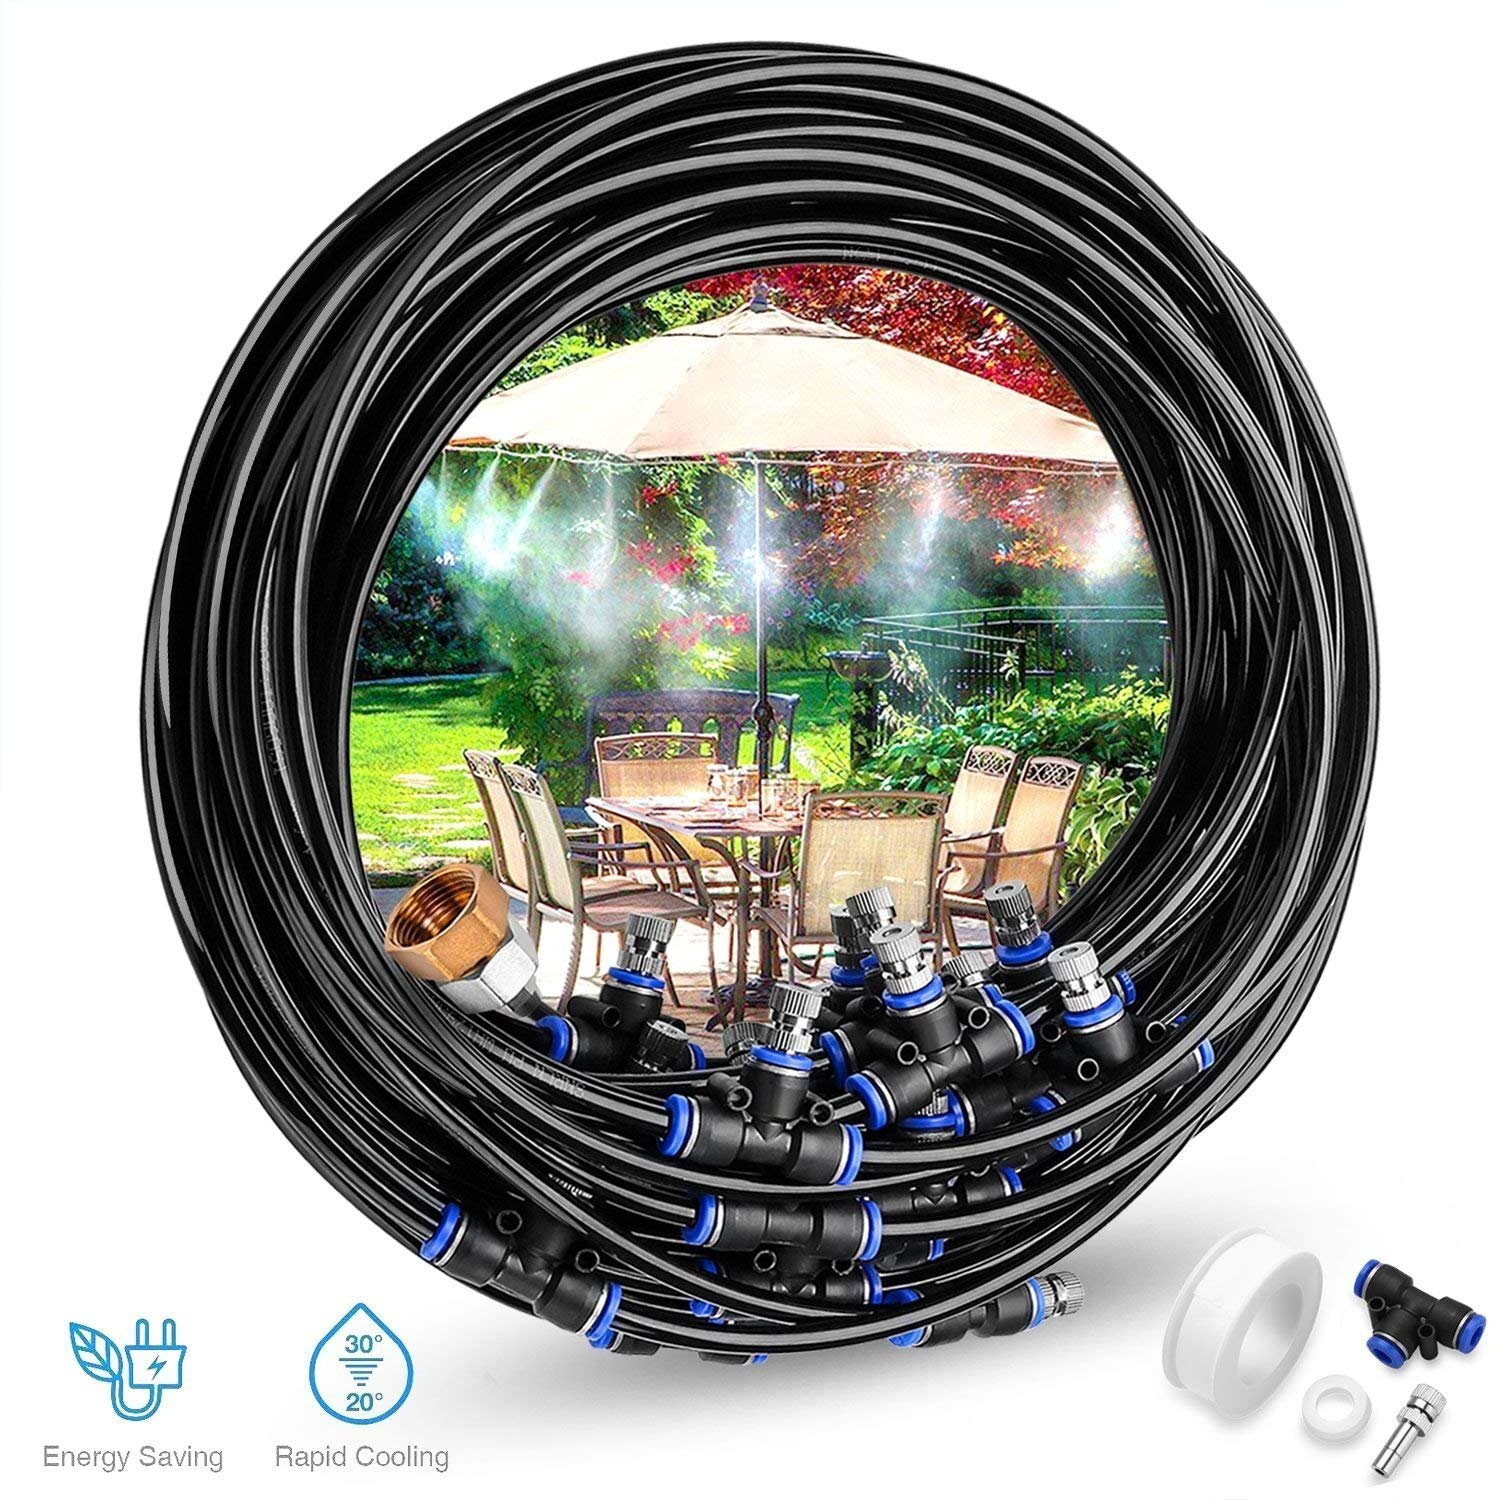 a Brass Adapter 3//4 9 Brass Mist Nozzles Upgraded 2019 Gesentur Misting Cooling System for Outdoor Patio Garden Home Irrigation Trampoline 26.2ft(8M) Misting Line